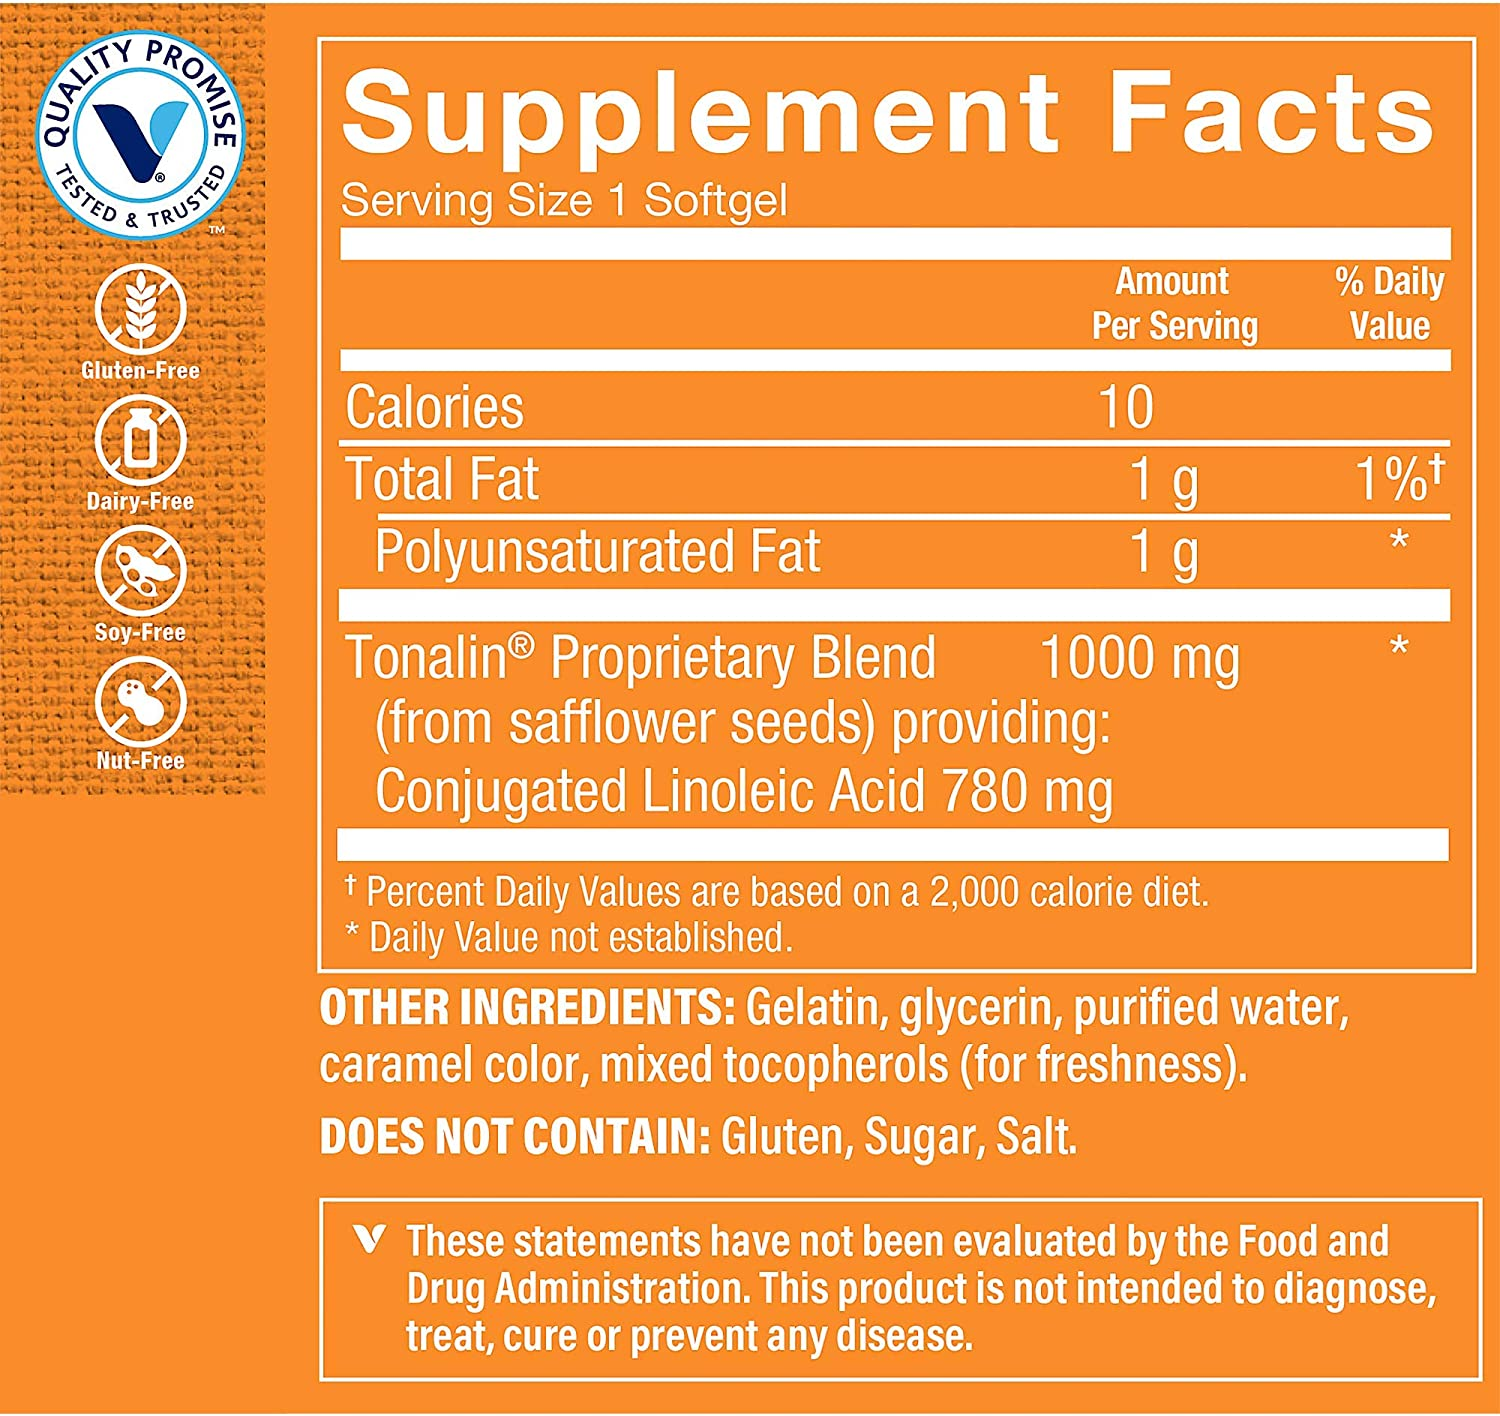 Tonalin CLA 1000mg Softgel, Conjugated Linoleic Acid 780mg from Safflower Seeds Supports Reduction of Body Fat, Stimulant Free, Gluten Free (90 Softgels) by The Vitamin Shoppe: Health & Personal Care